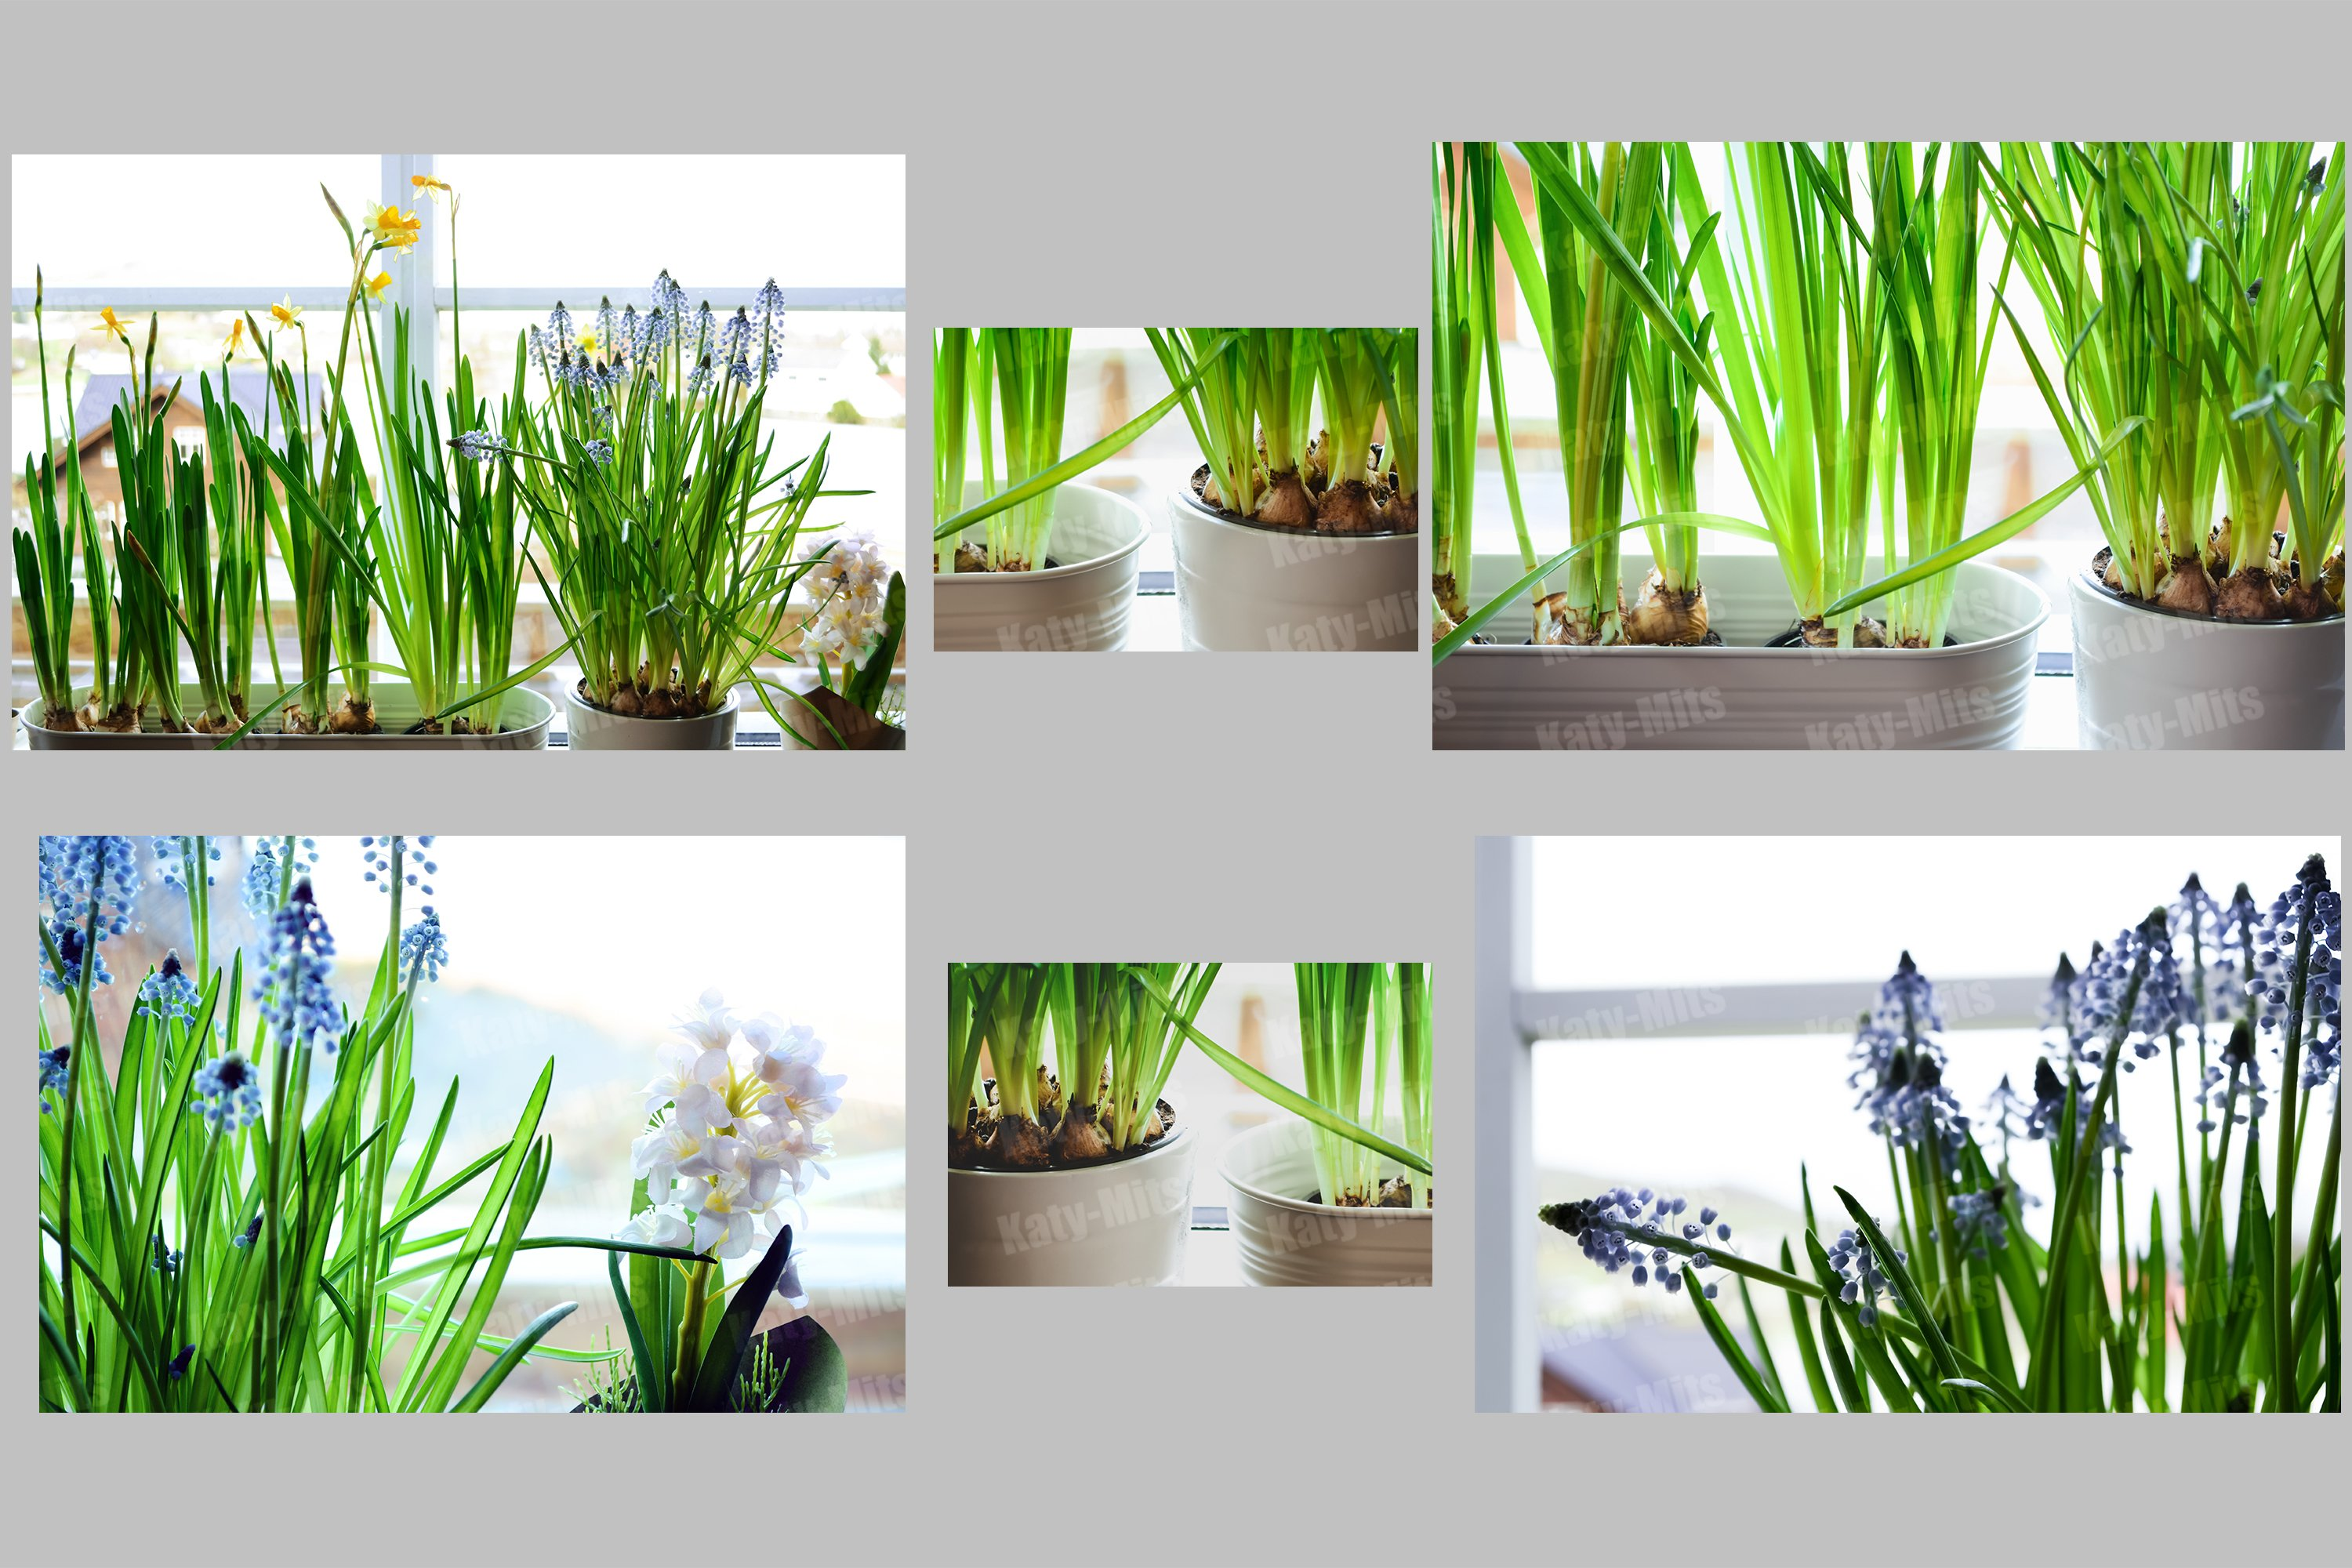 Bulbous plants in the interior. Set of 6 photos example image 1